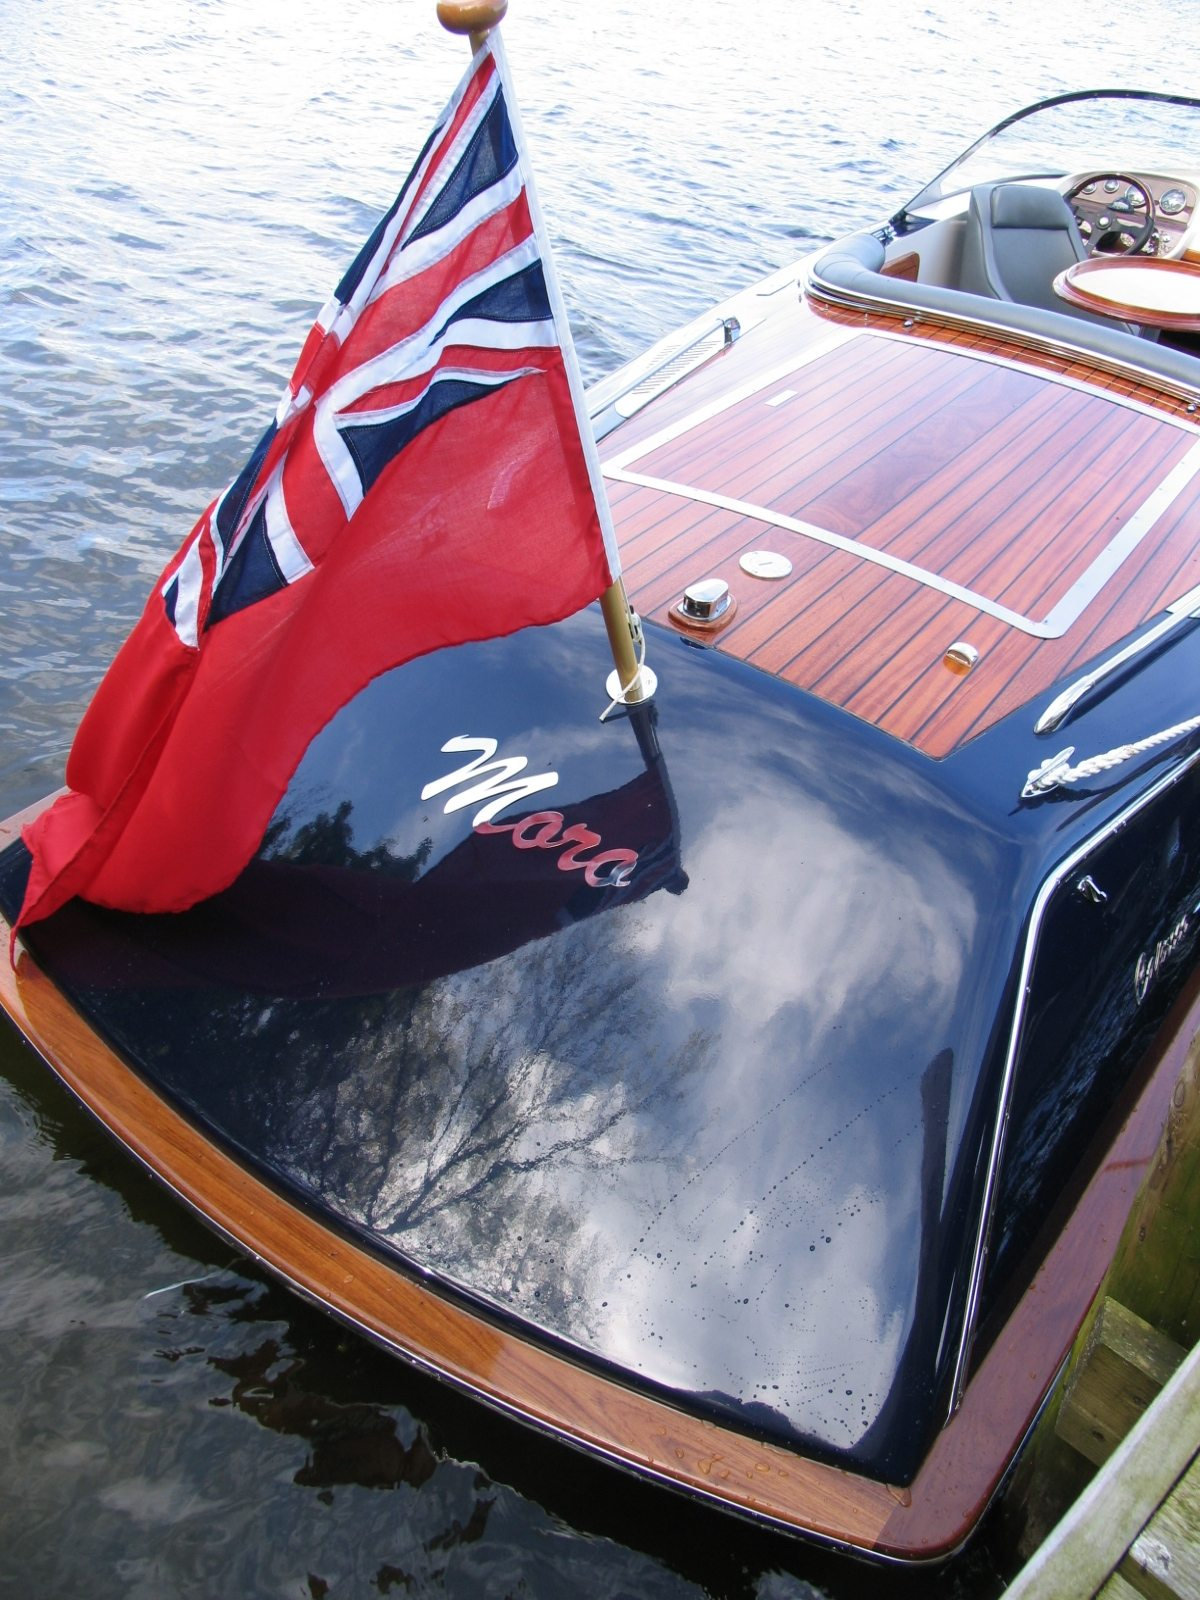 An new build electric boat Caprice